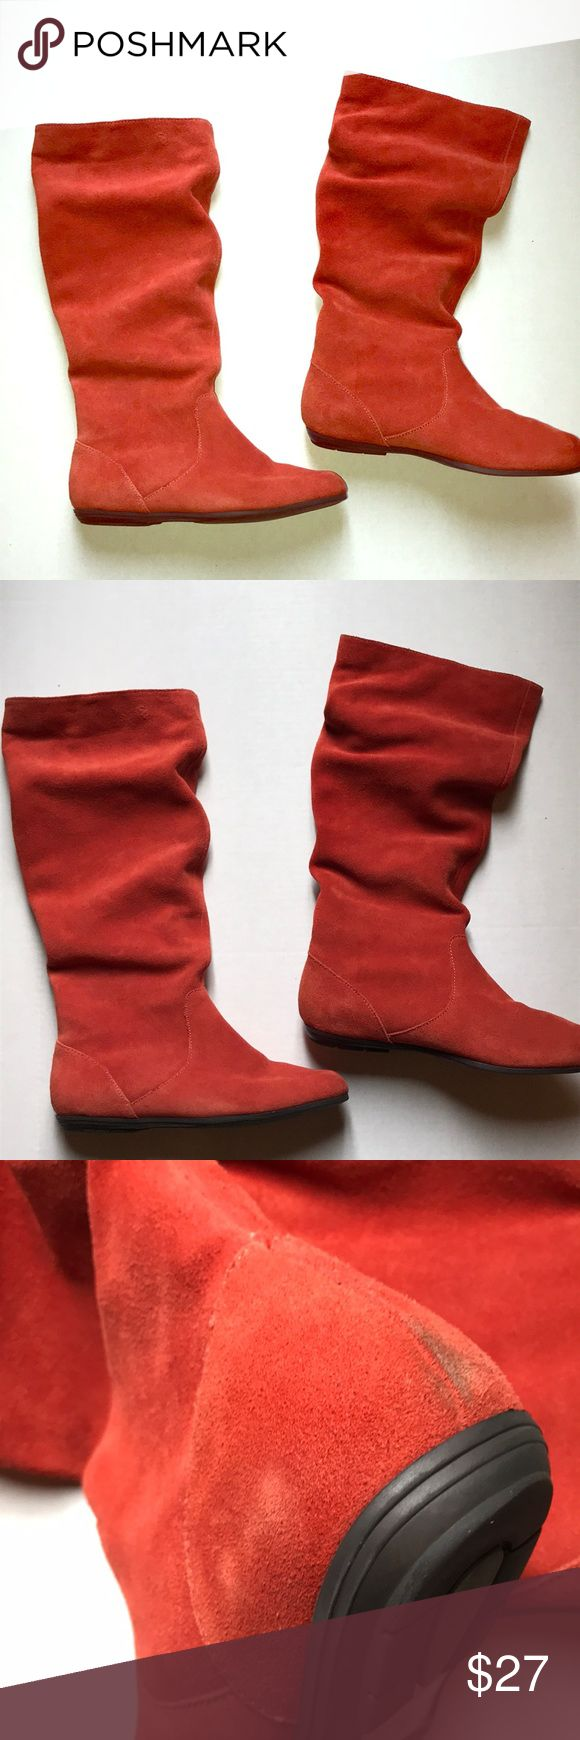 Colin Stuart orange suede slouch boots 8 Very cute orange suede slouch boots by Colin Stuart are fabulous. Great fall color. They are in really good condition. They do show a few signs of wear as pictured. Some scuffs but nothing that takes away from the Beauty. They have a vintage feel. Very trendy now. Colin Stuart Shoes Heeled Boots